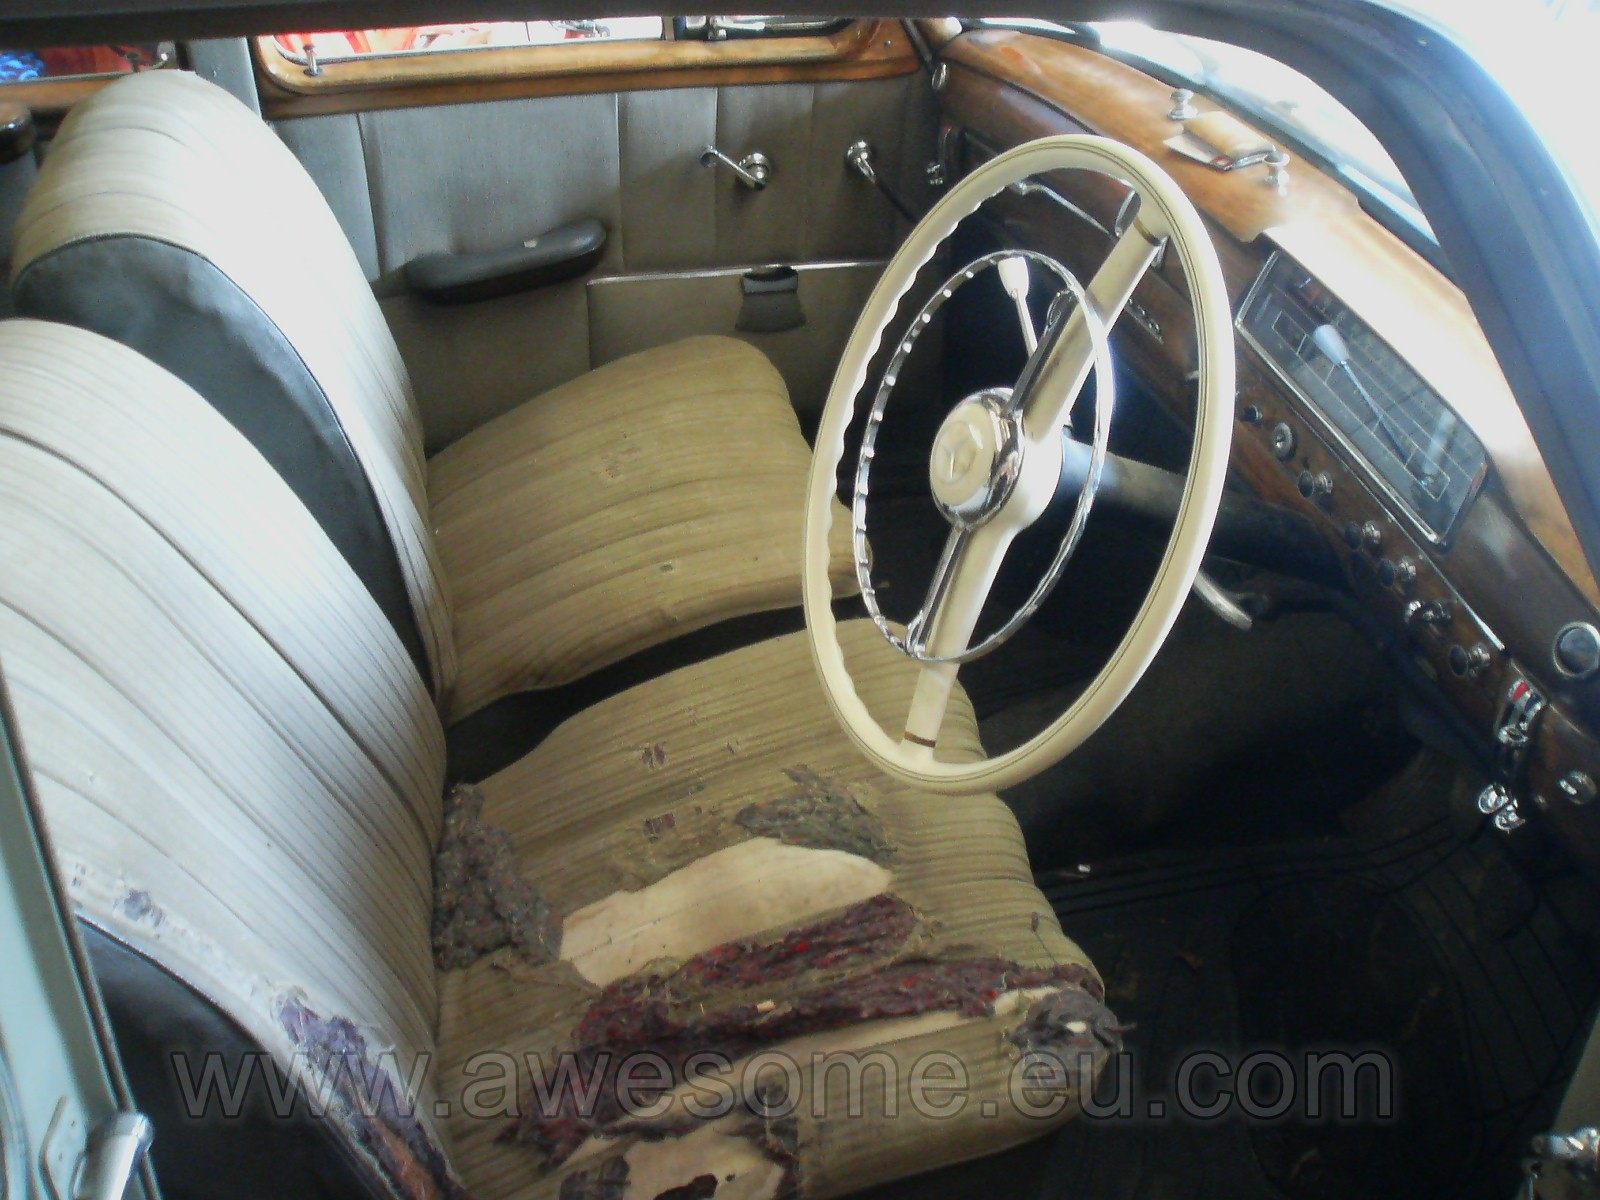 Original 1955 Mercedes Benz interior